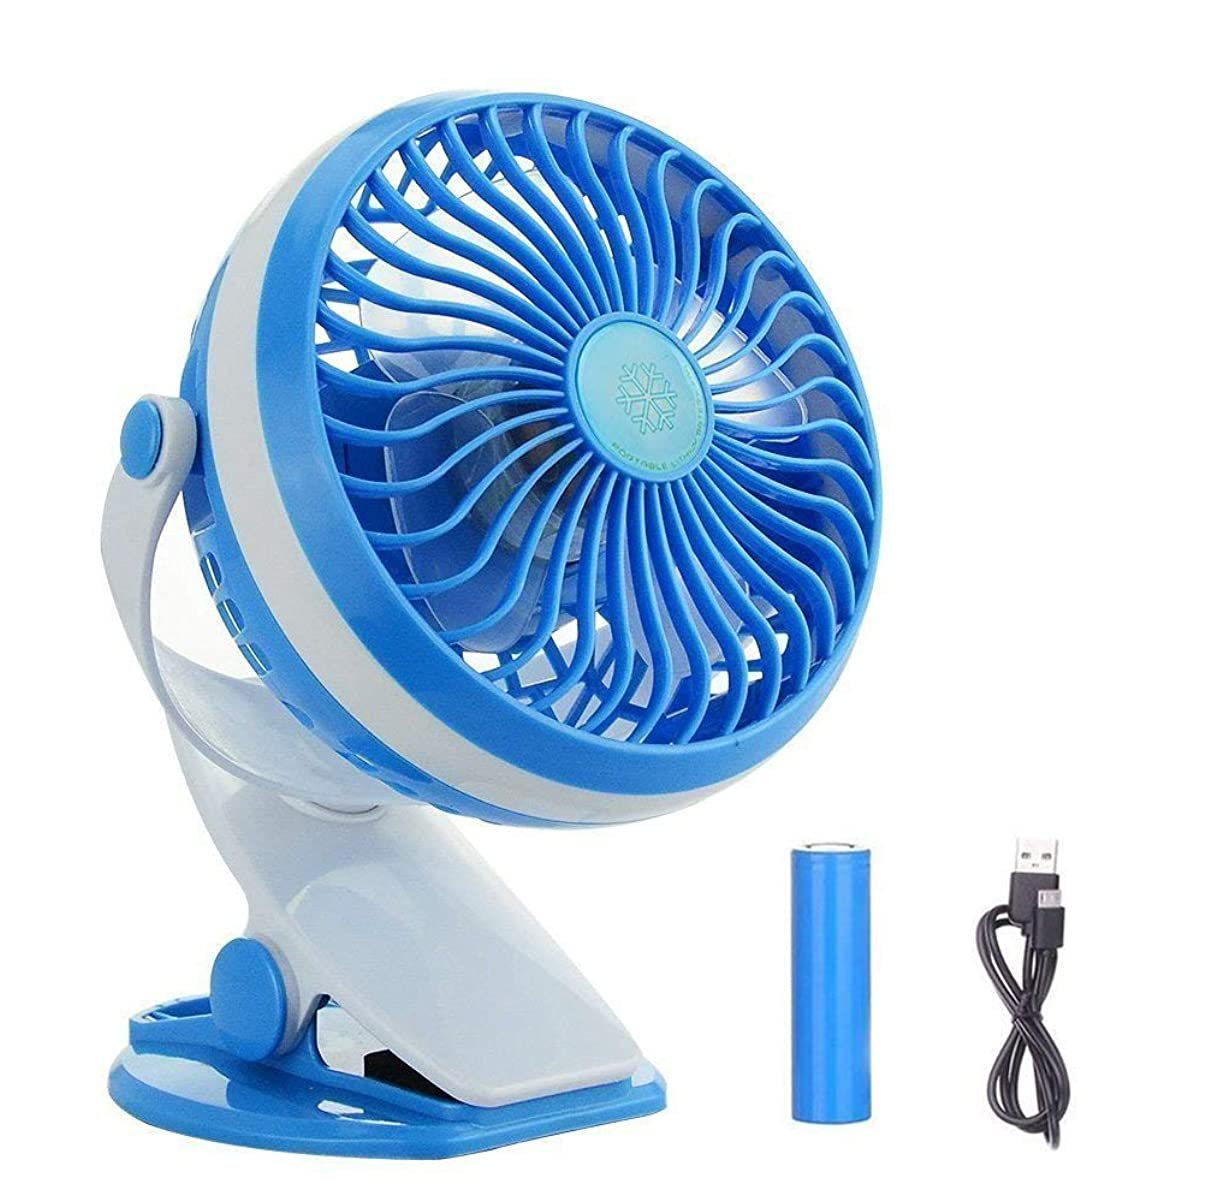 BestFire Clip On Fan, USB Battery Operated Clip Fan for Bed, Personal USB Clip Desk Fan with Stepless Speed, Rechargeable, 360 Degree Rotating for Baby Stroller, Car, Office, Outdoor, Traveling, Camp